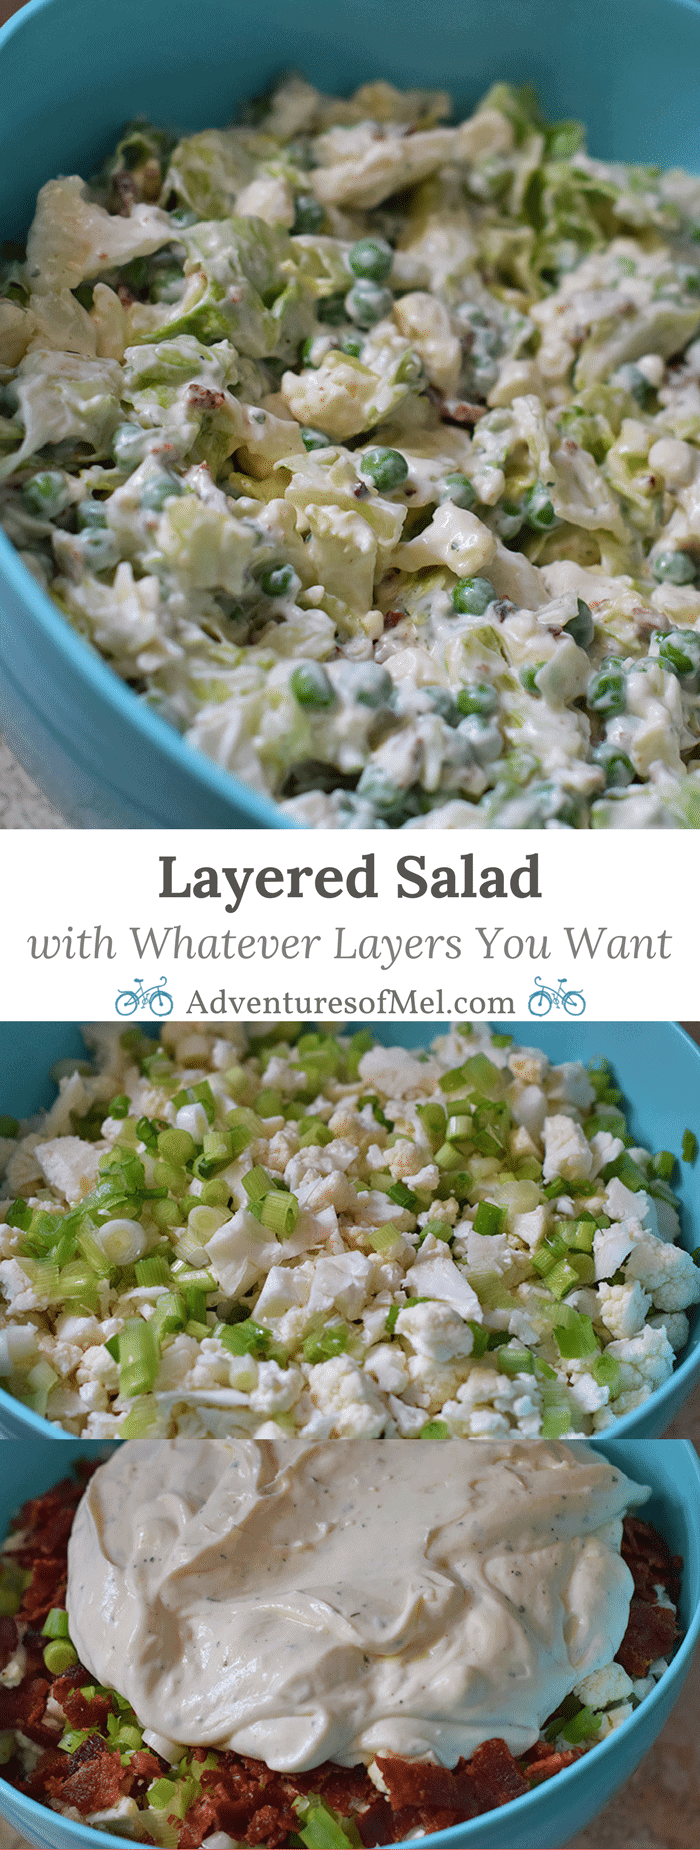 Layered Salad is the perfect salad recipe for family get-togethers, parties, or your next BBQ. You can add whatever types of layers you want, including cauliflower, peas, lettuce, bacon, or whatever else your heart desires.